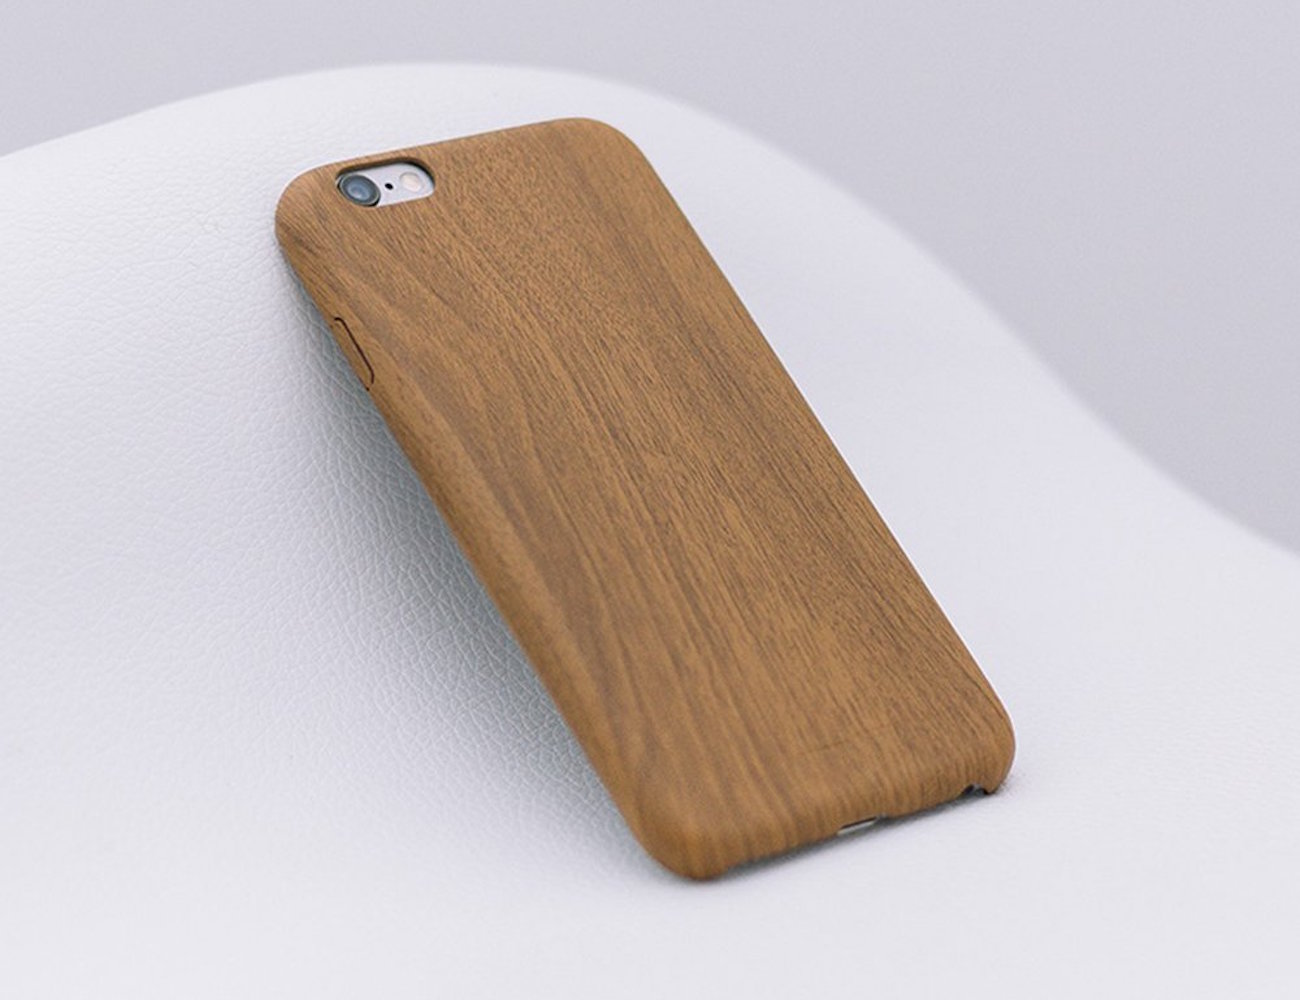 Ultra Slim Wood Pattern iPhone Case by Satechi